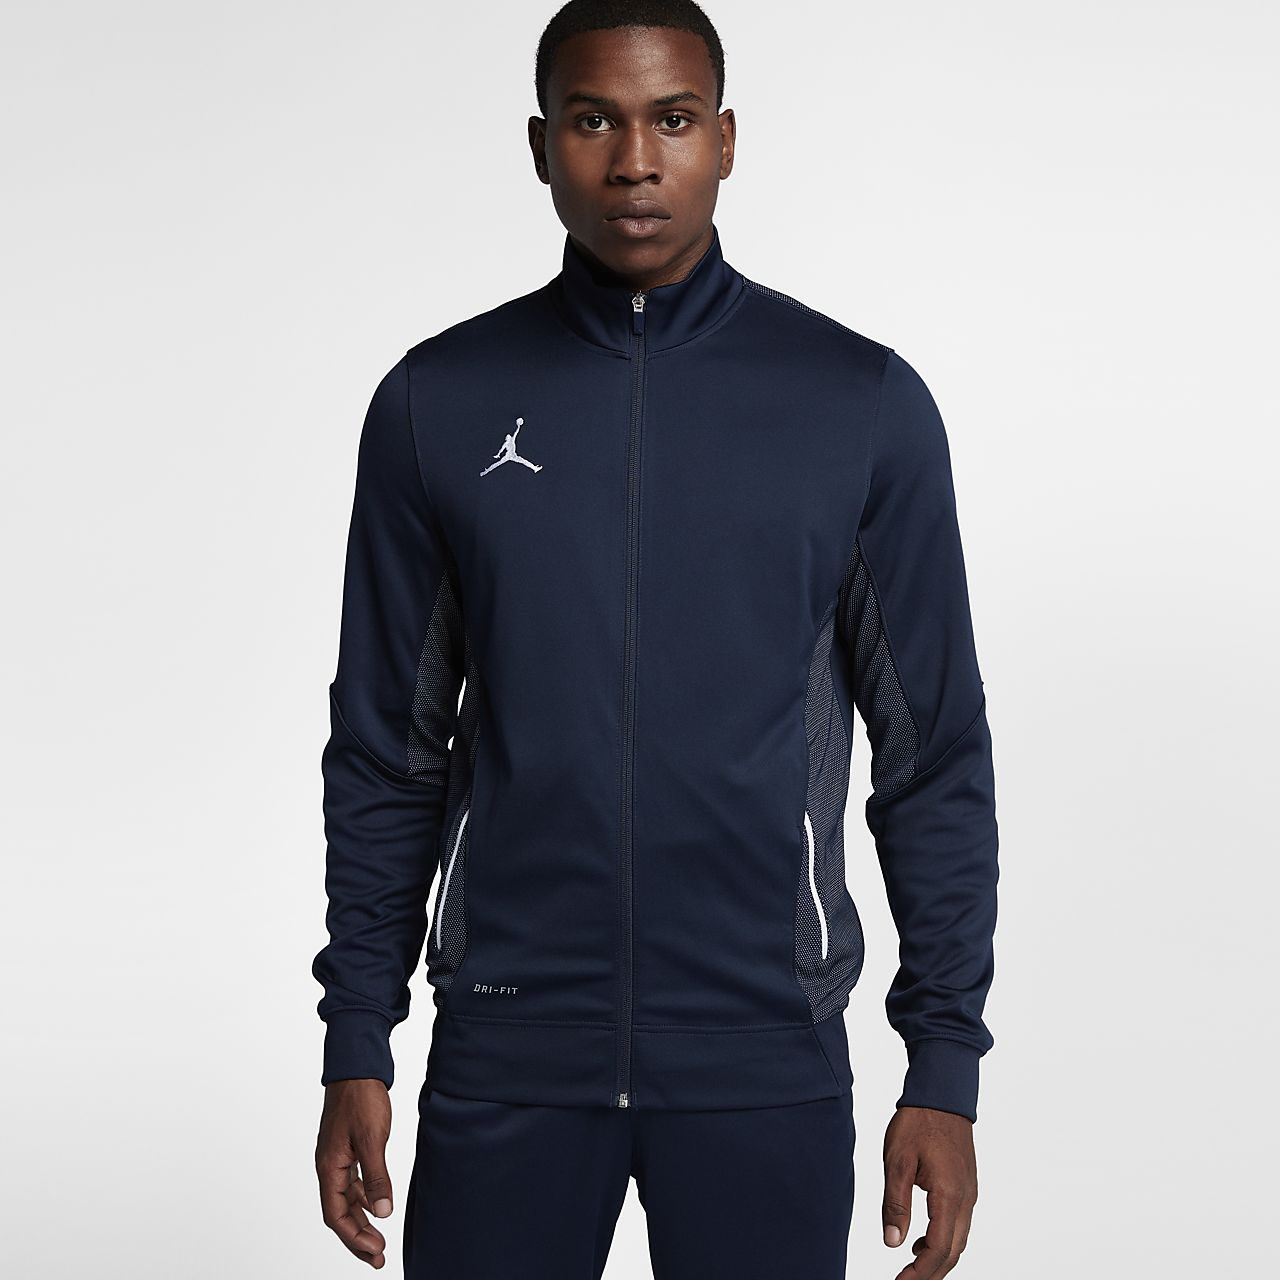 ... Jordan Flight (Team) Men's Basketball Jacket